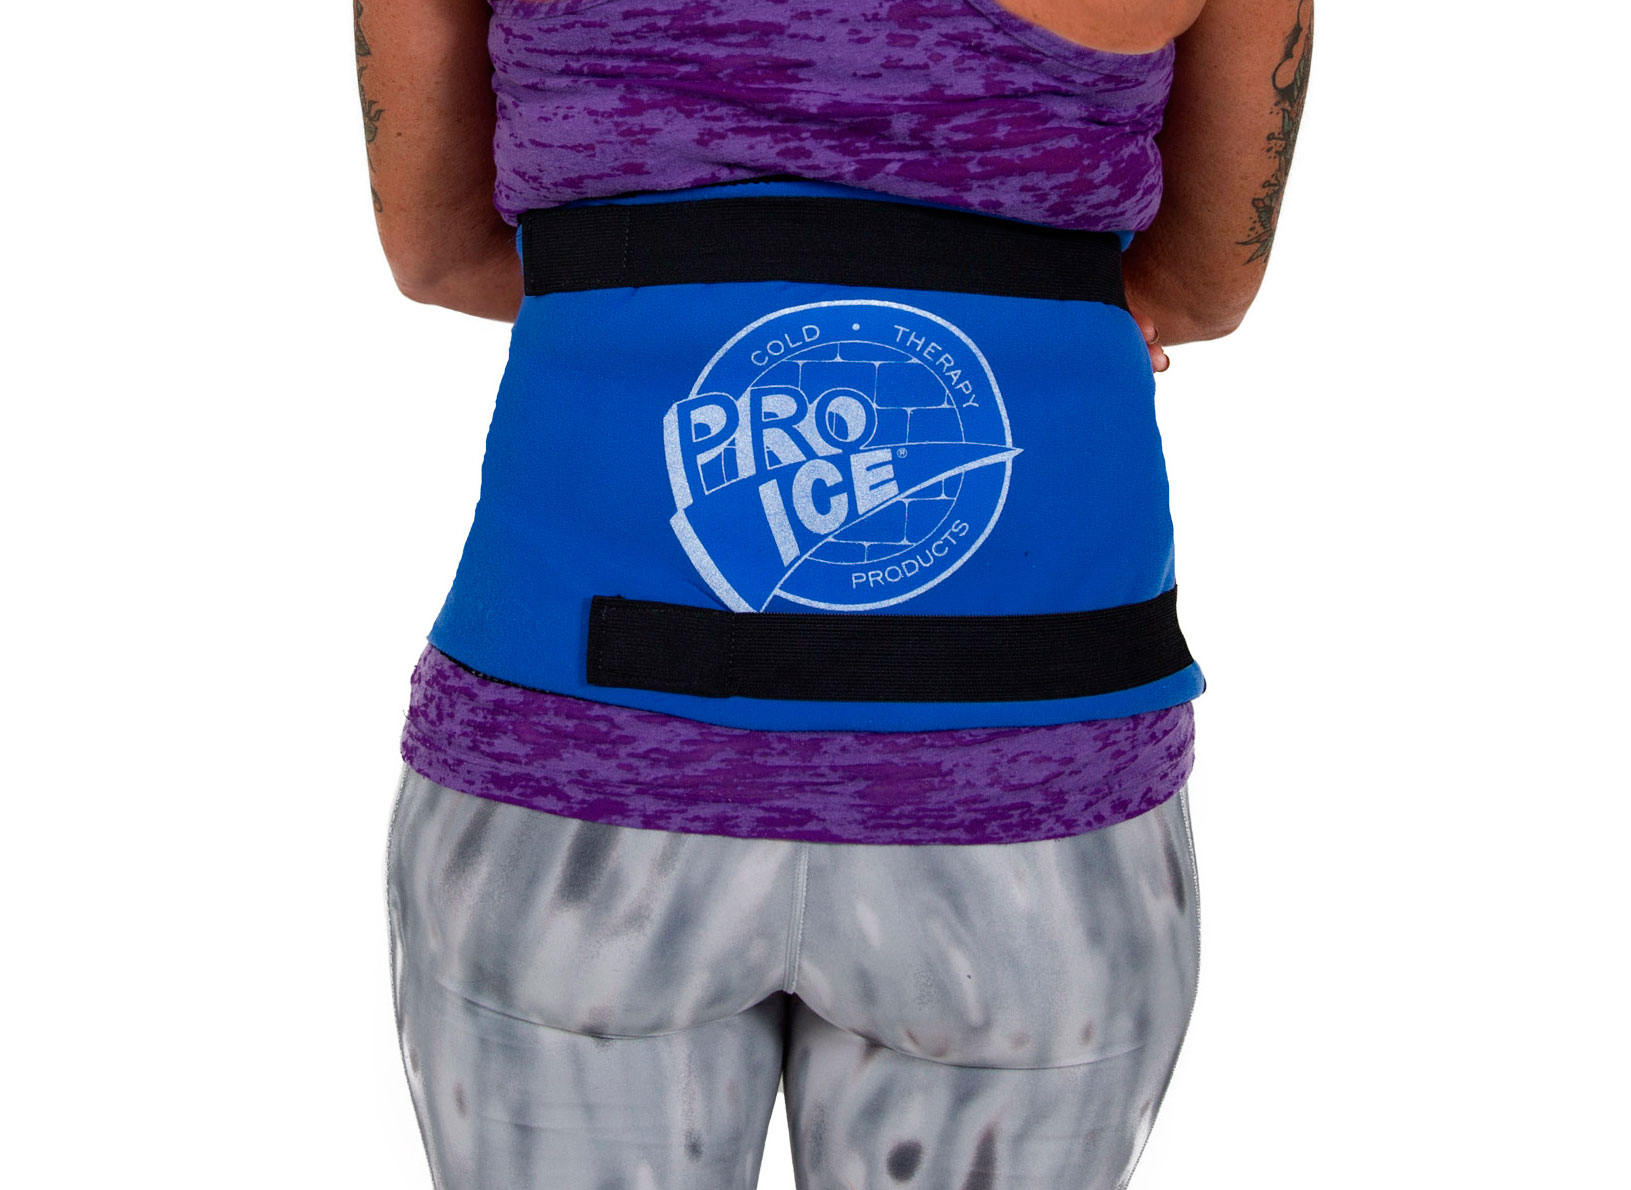 Pro Ice Universal Ice Wrap pi400 - Low Back Application